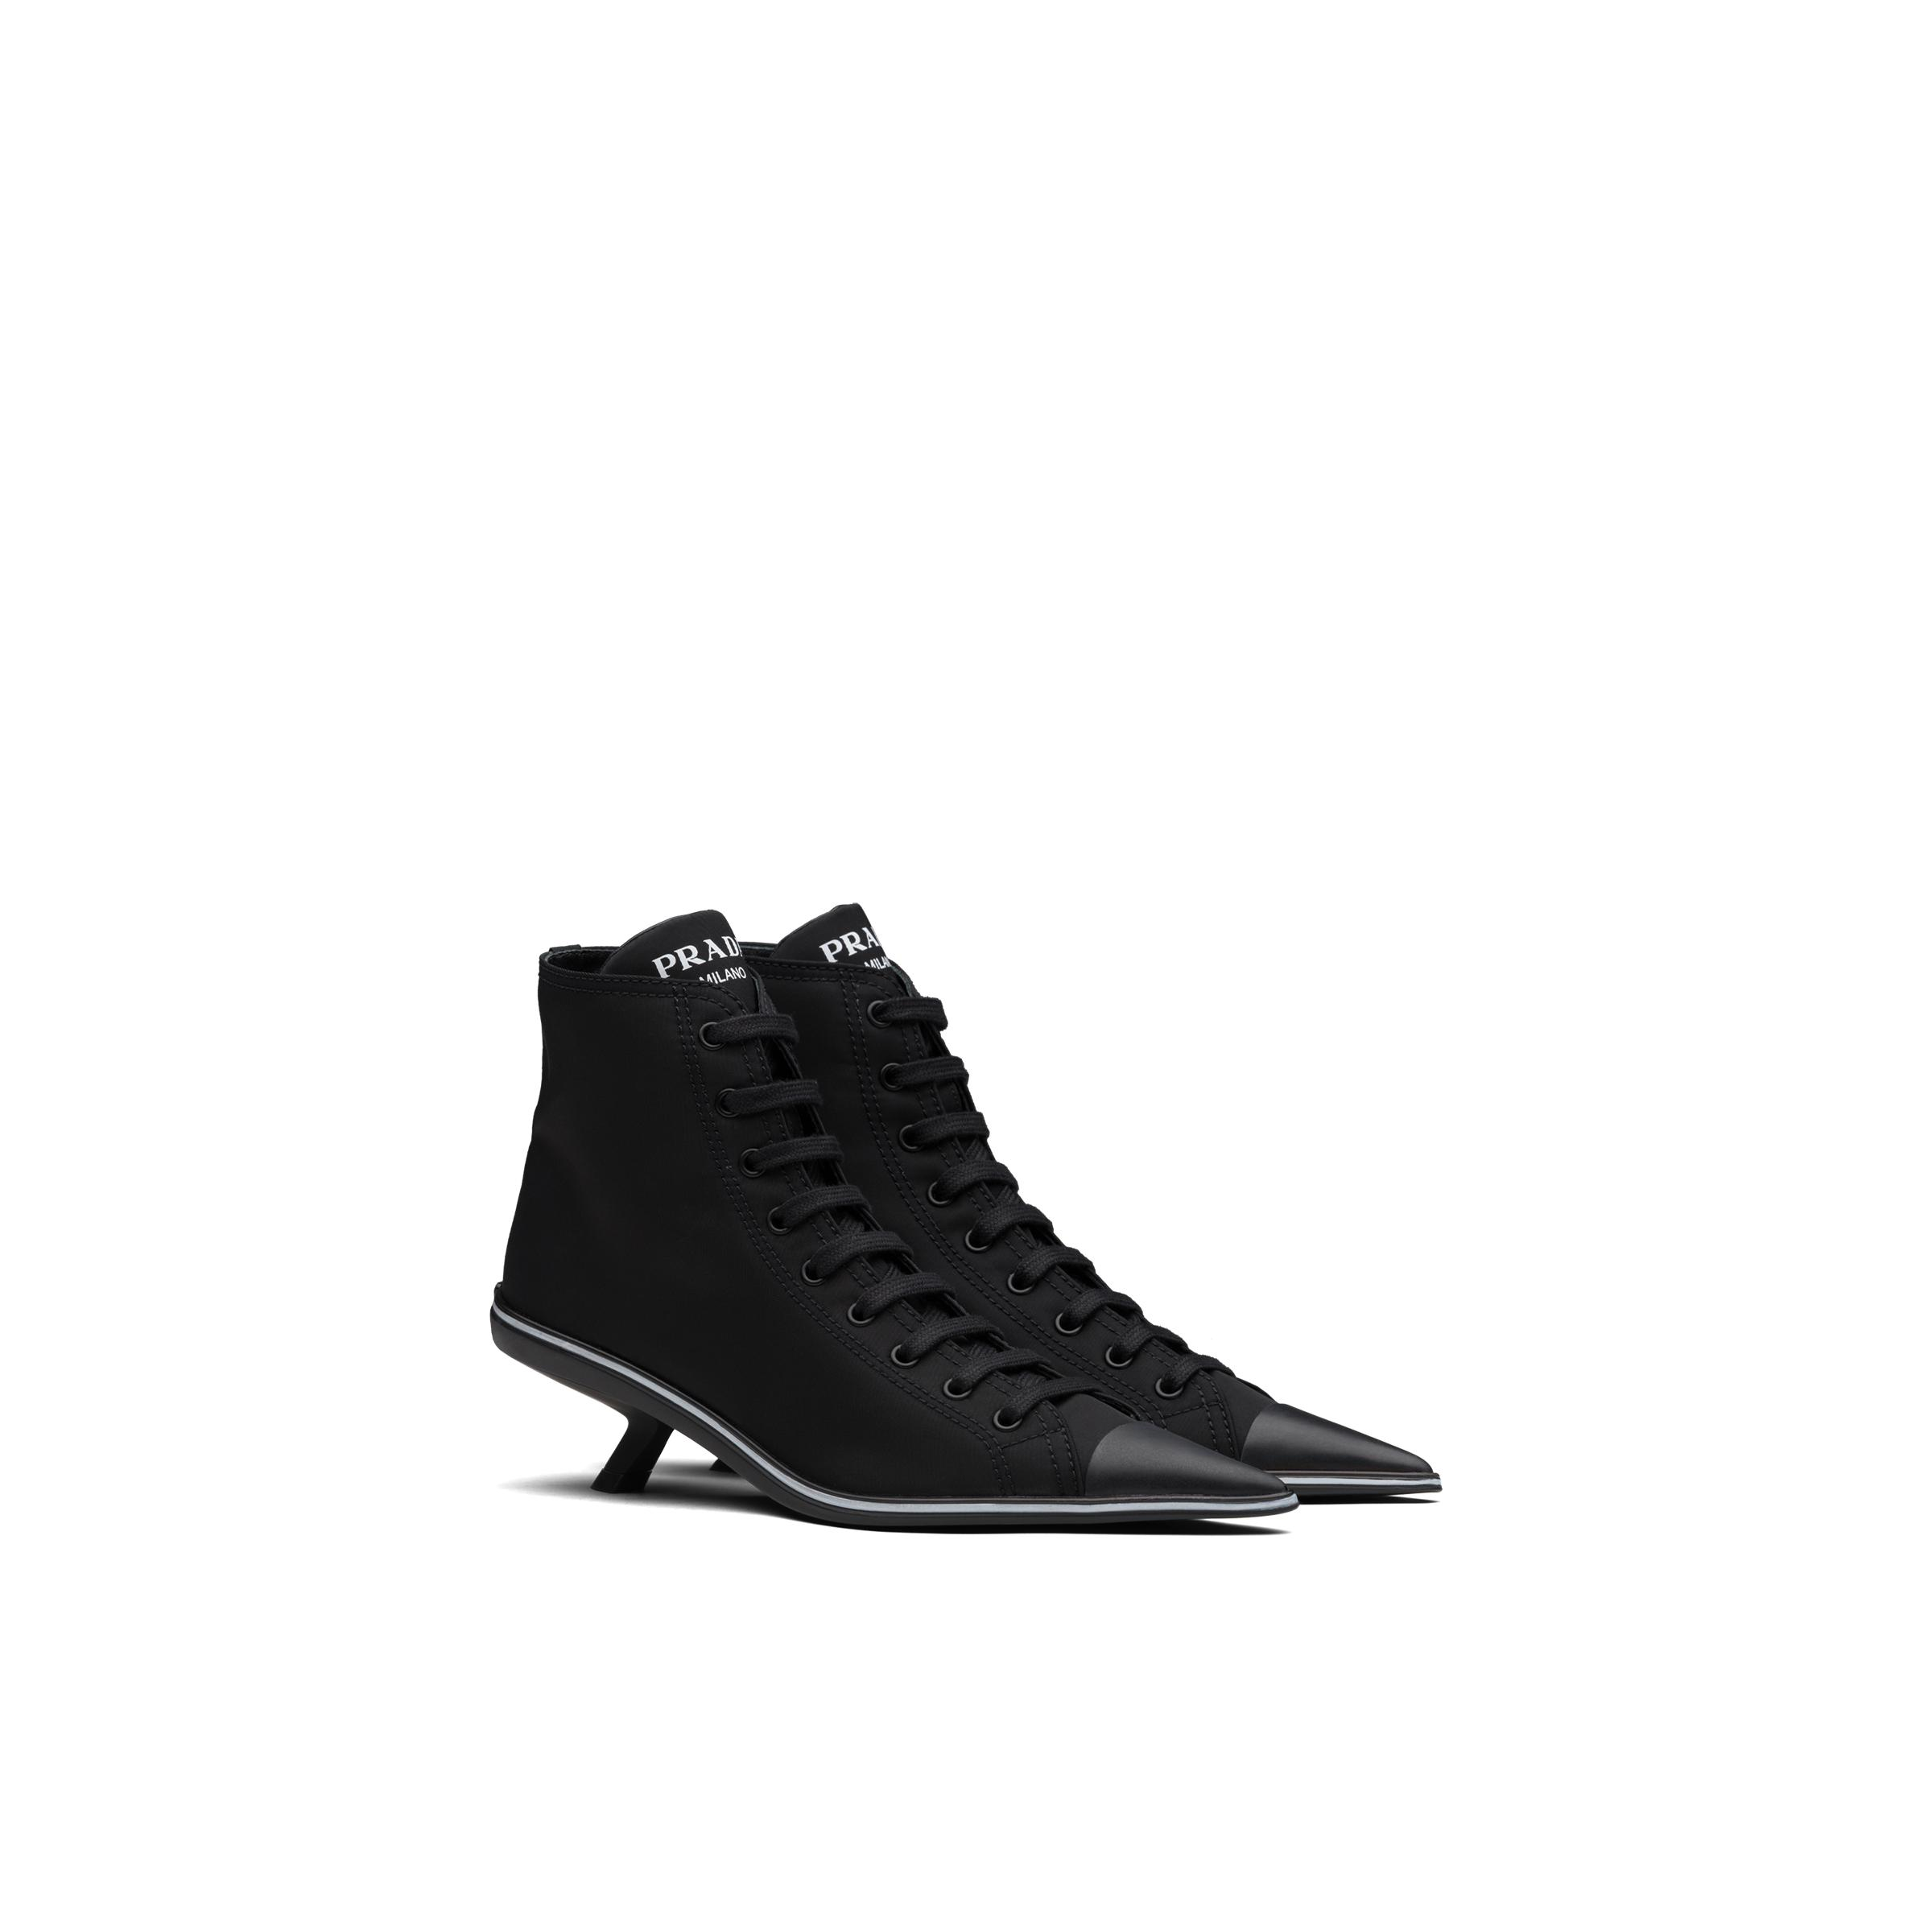 Synthesis Heeled High-top Sneakers Women Black